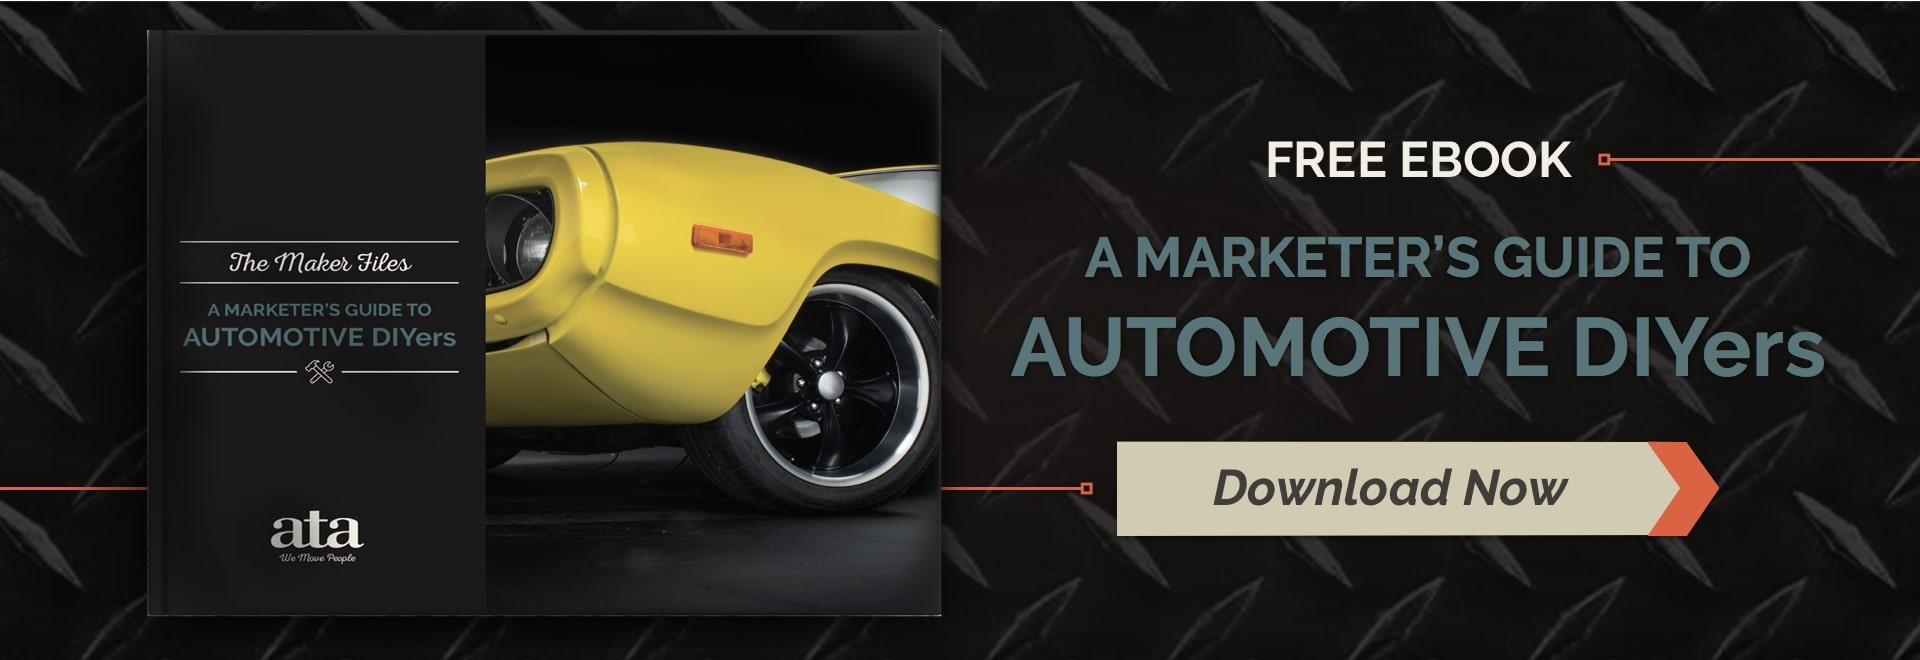 Marketer's Guide to Automotive DIYers